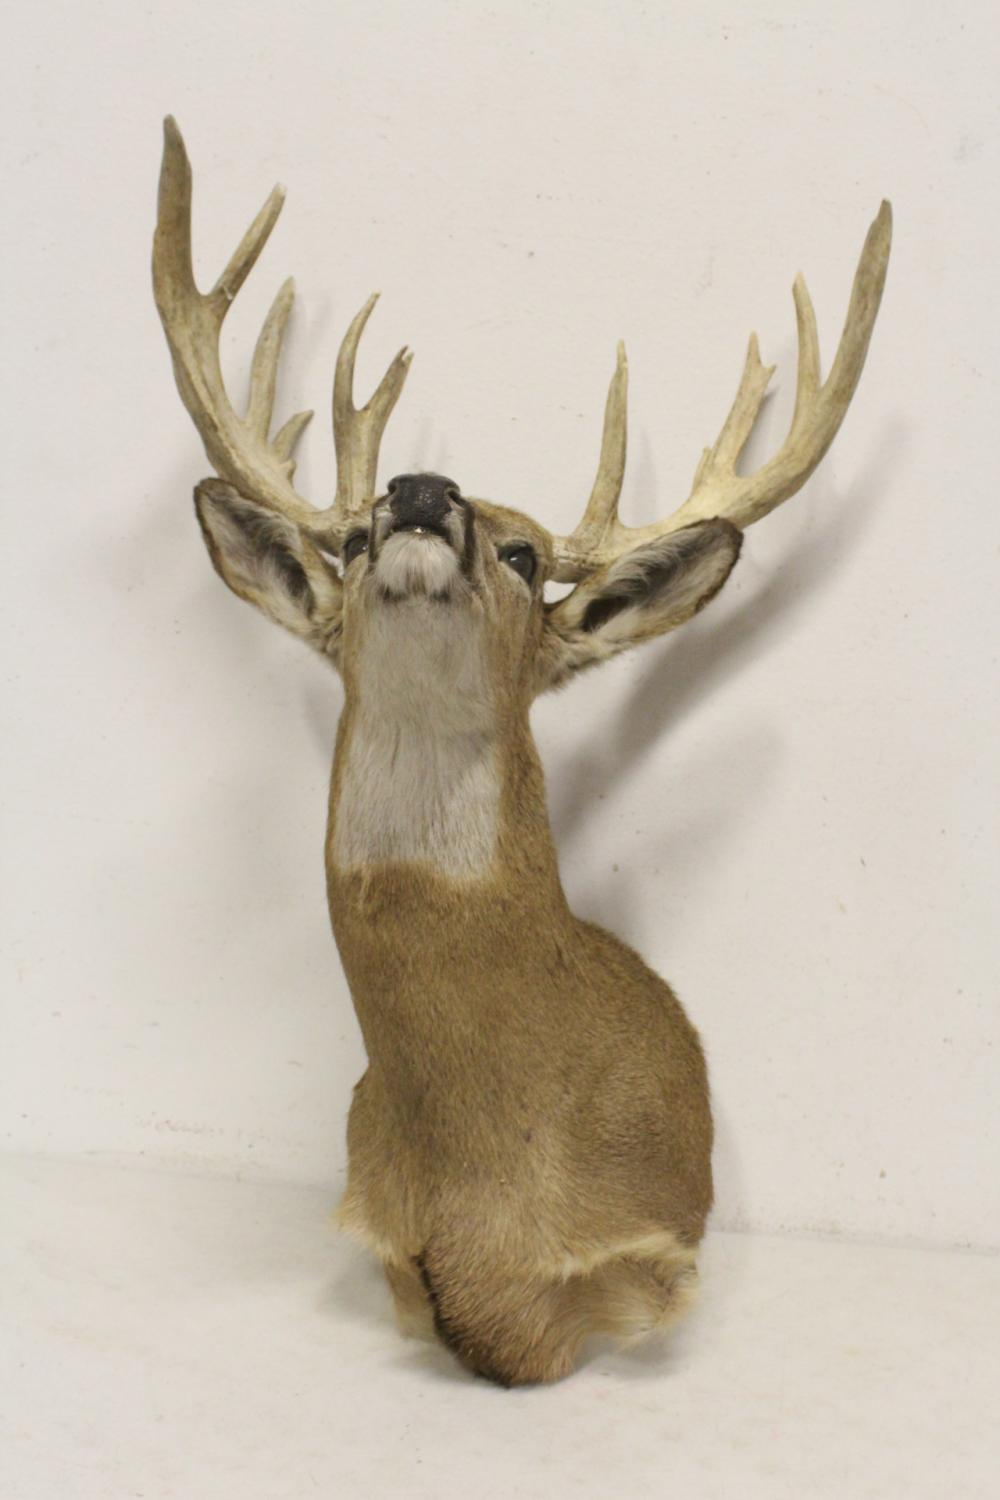 Lot 44: shoulder mount taxidermy of mountain goat